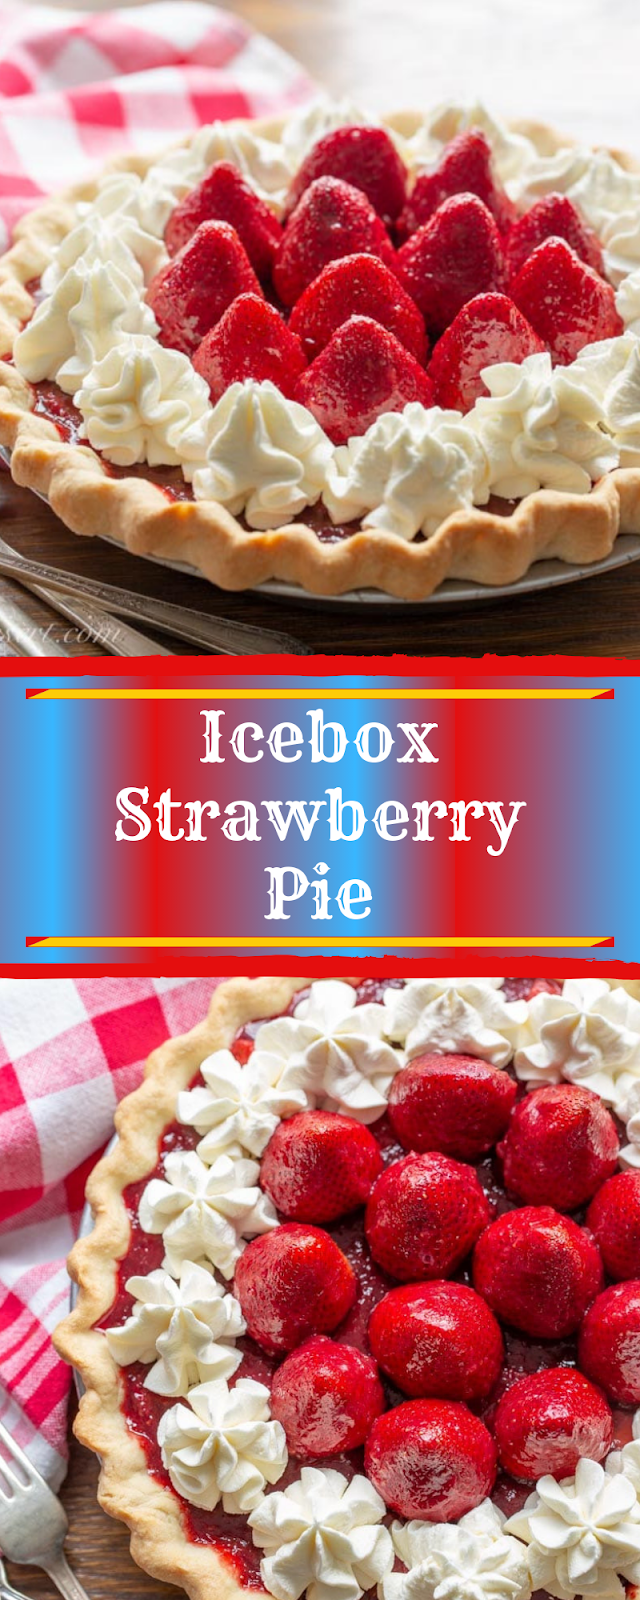 Icebox Strawberry Pie